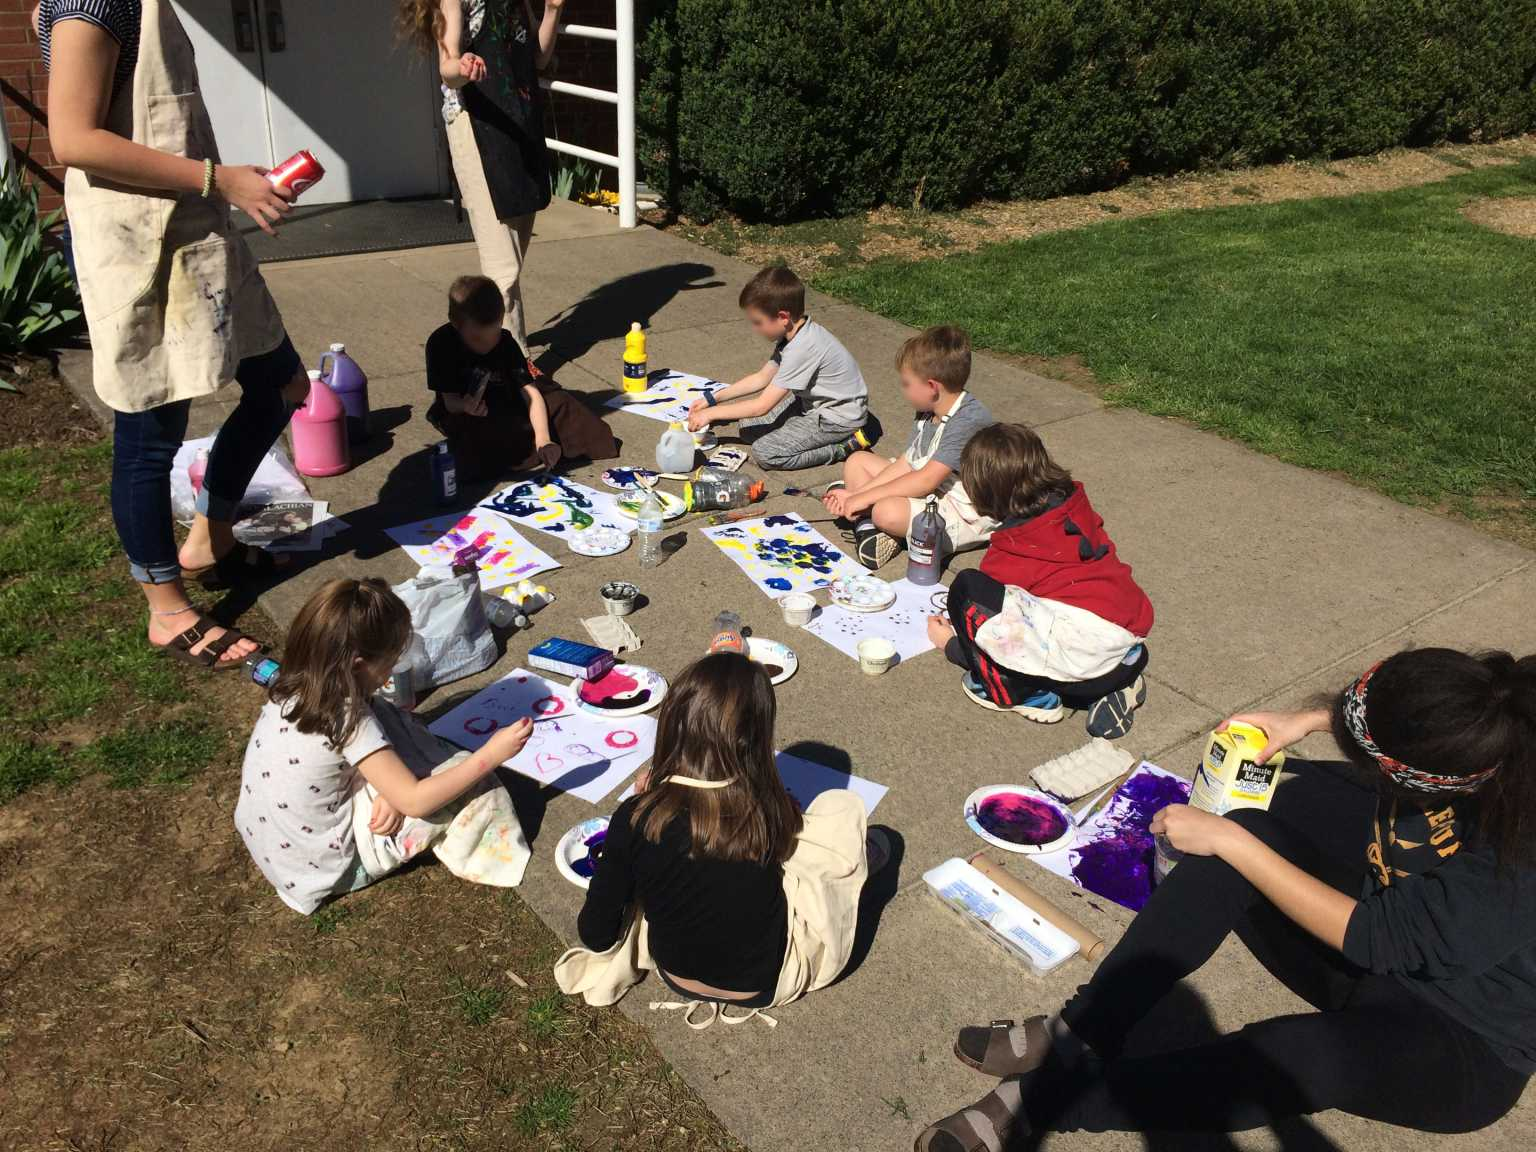 Elementary Ed. students work with young people to create environmental artwork with recycled materials through the Kaleidoscope afterschool program.